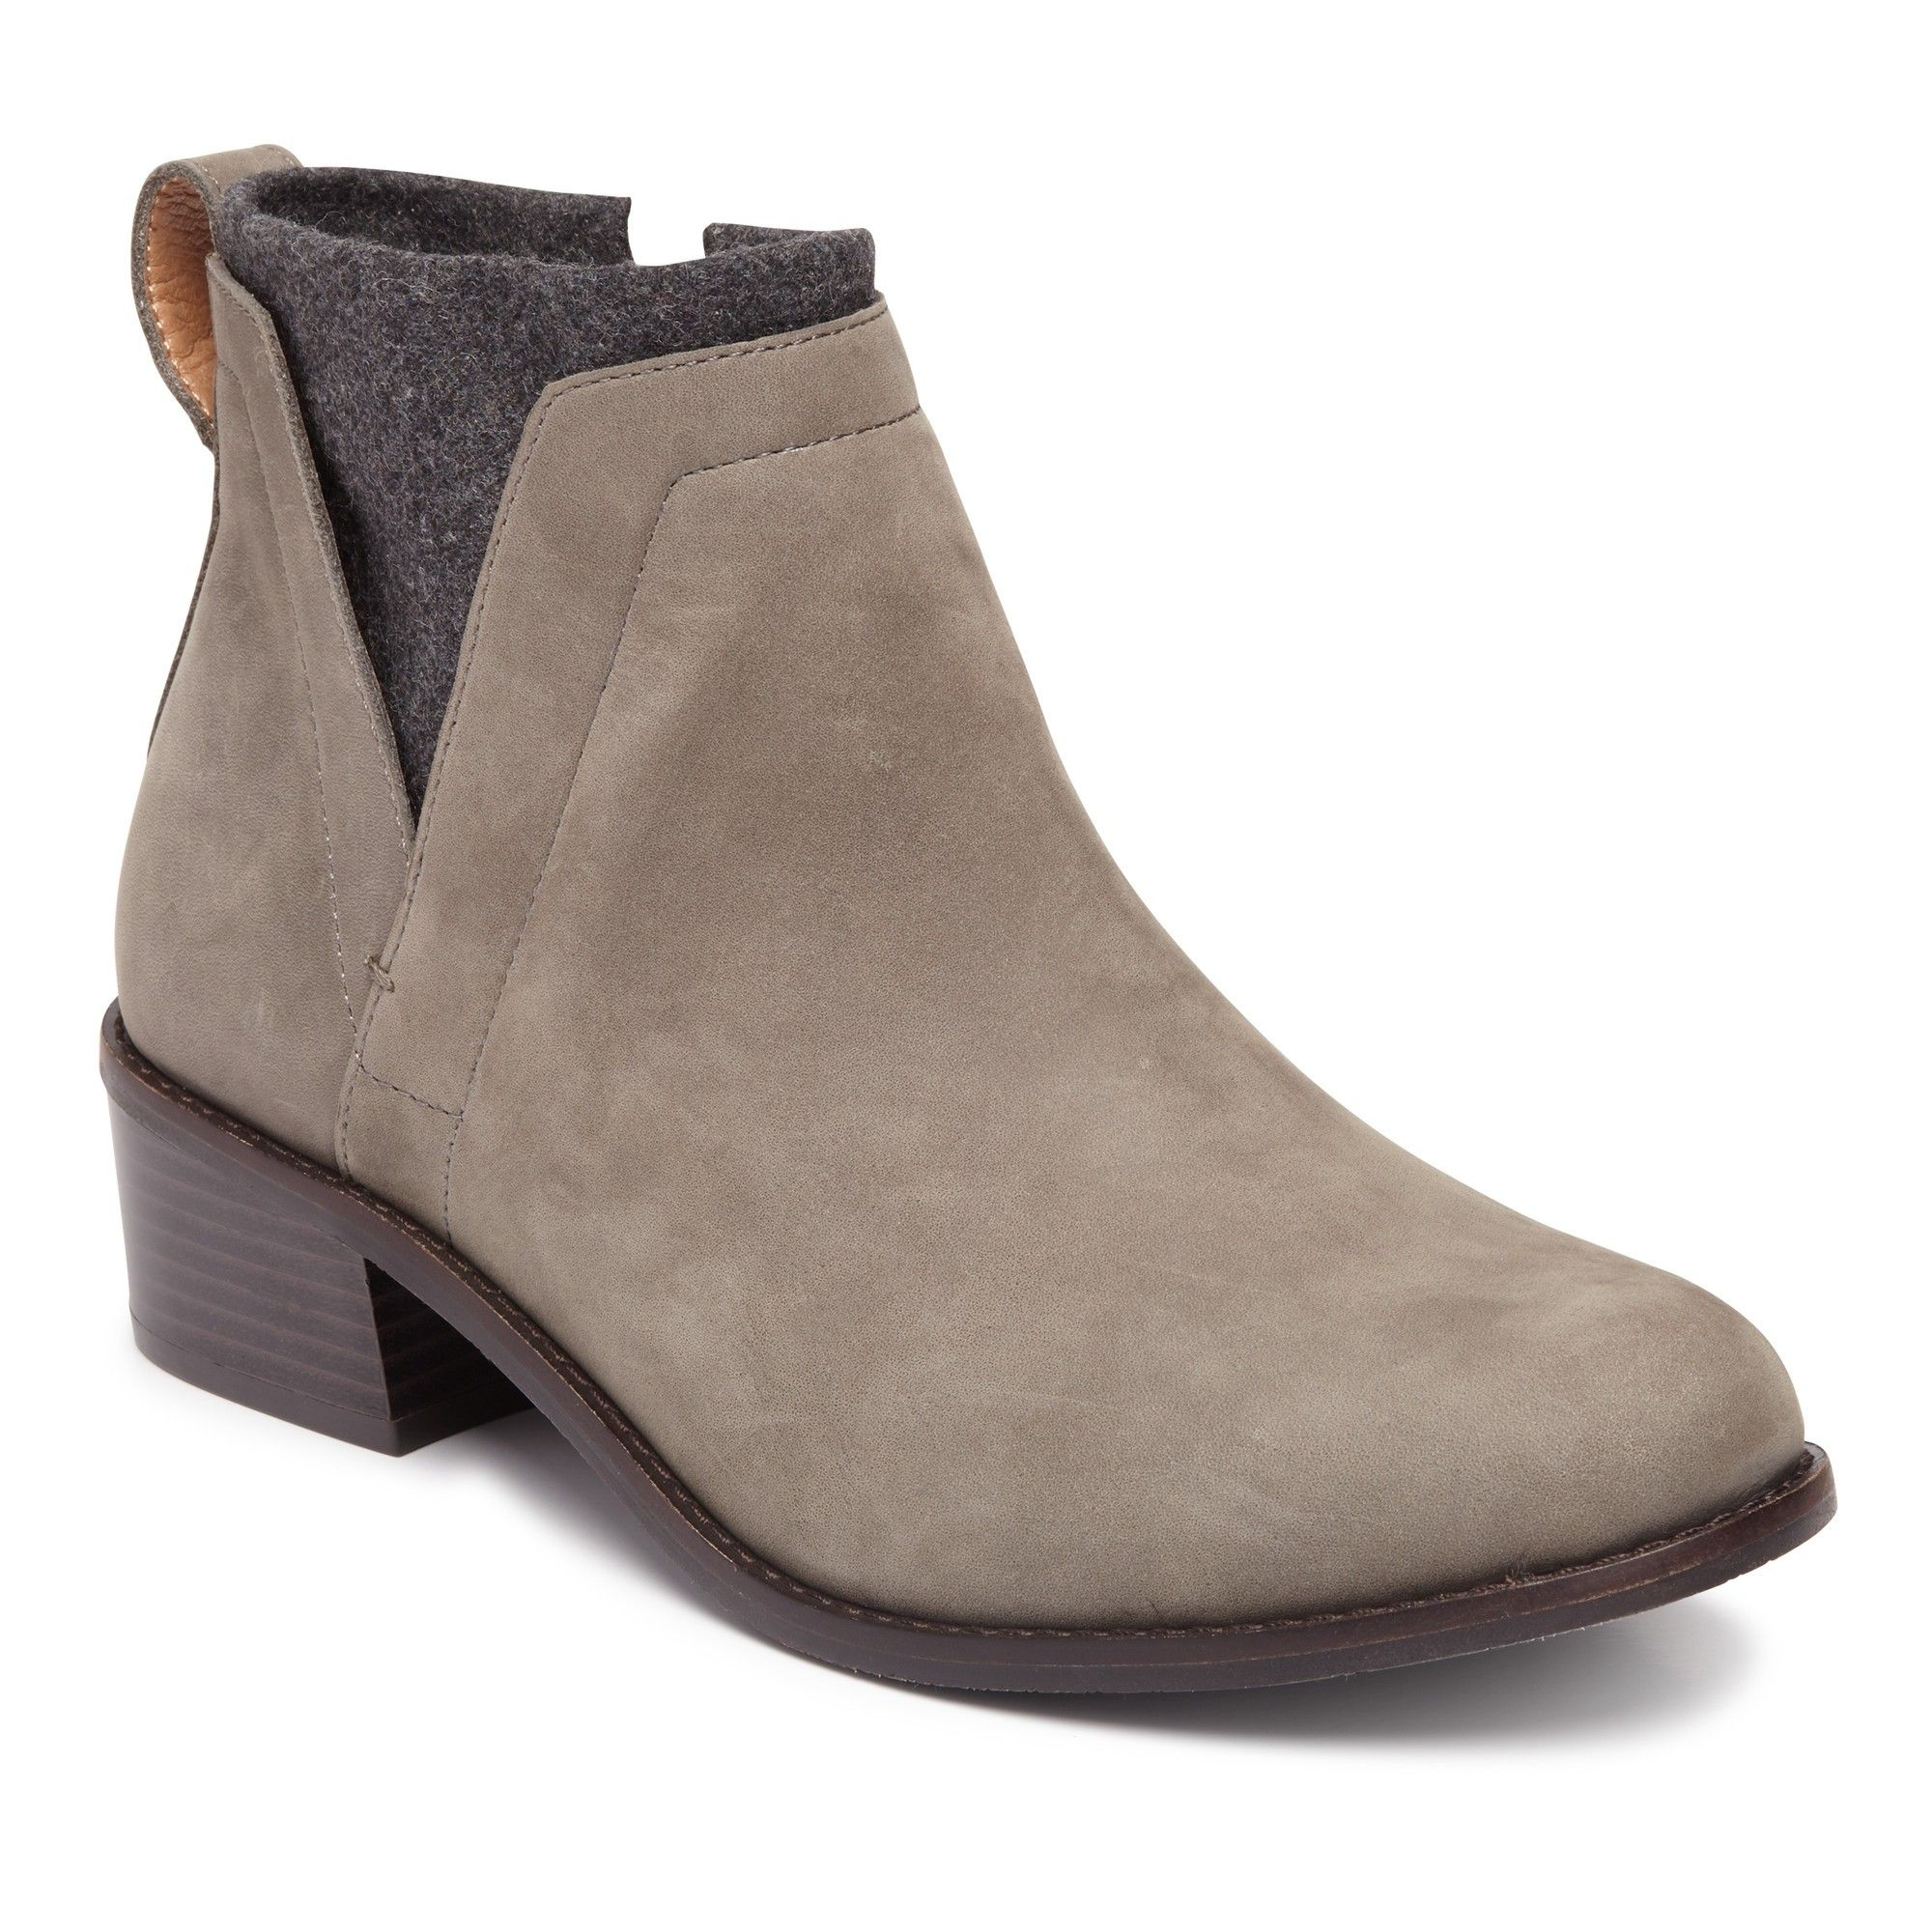 Joslyn Ankle Boot   SHOES in 2019   Low heel ankle boots